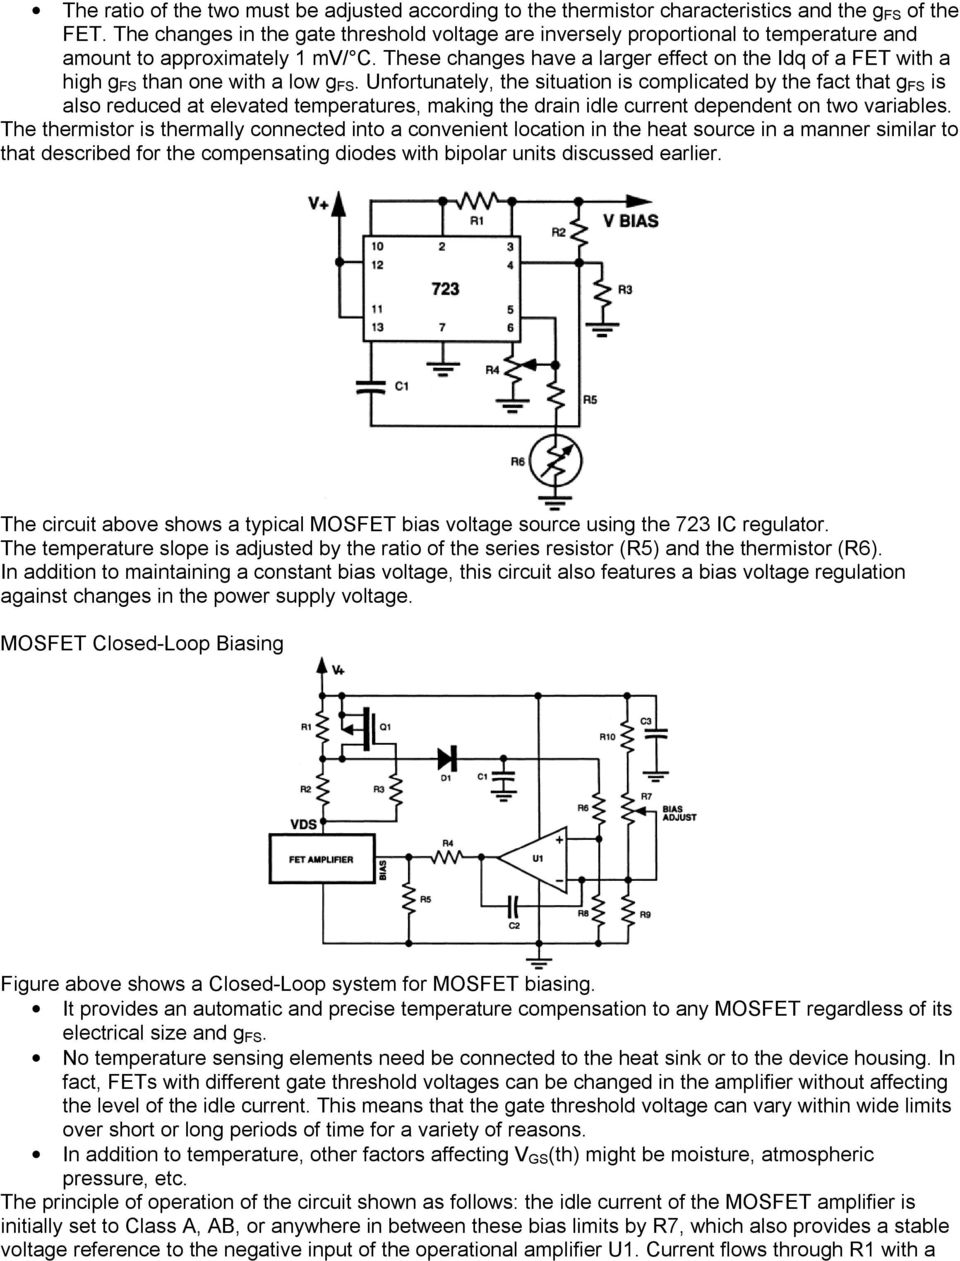 Bias Circuits For Rf Devices Pdf Supply Level At Ac The Circuit Looks Like Your Basic Inverting These Changes Have A Larger Effect On Idq Of Fet With High G